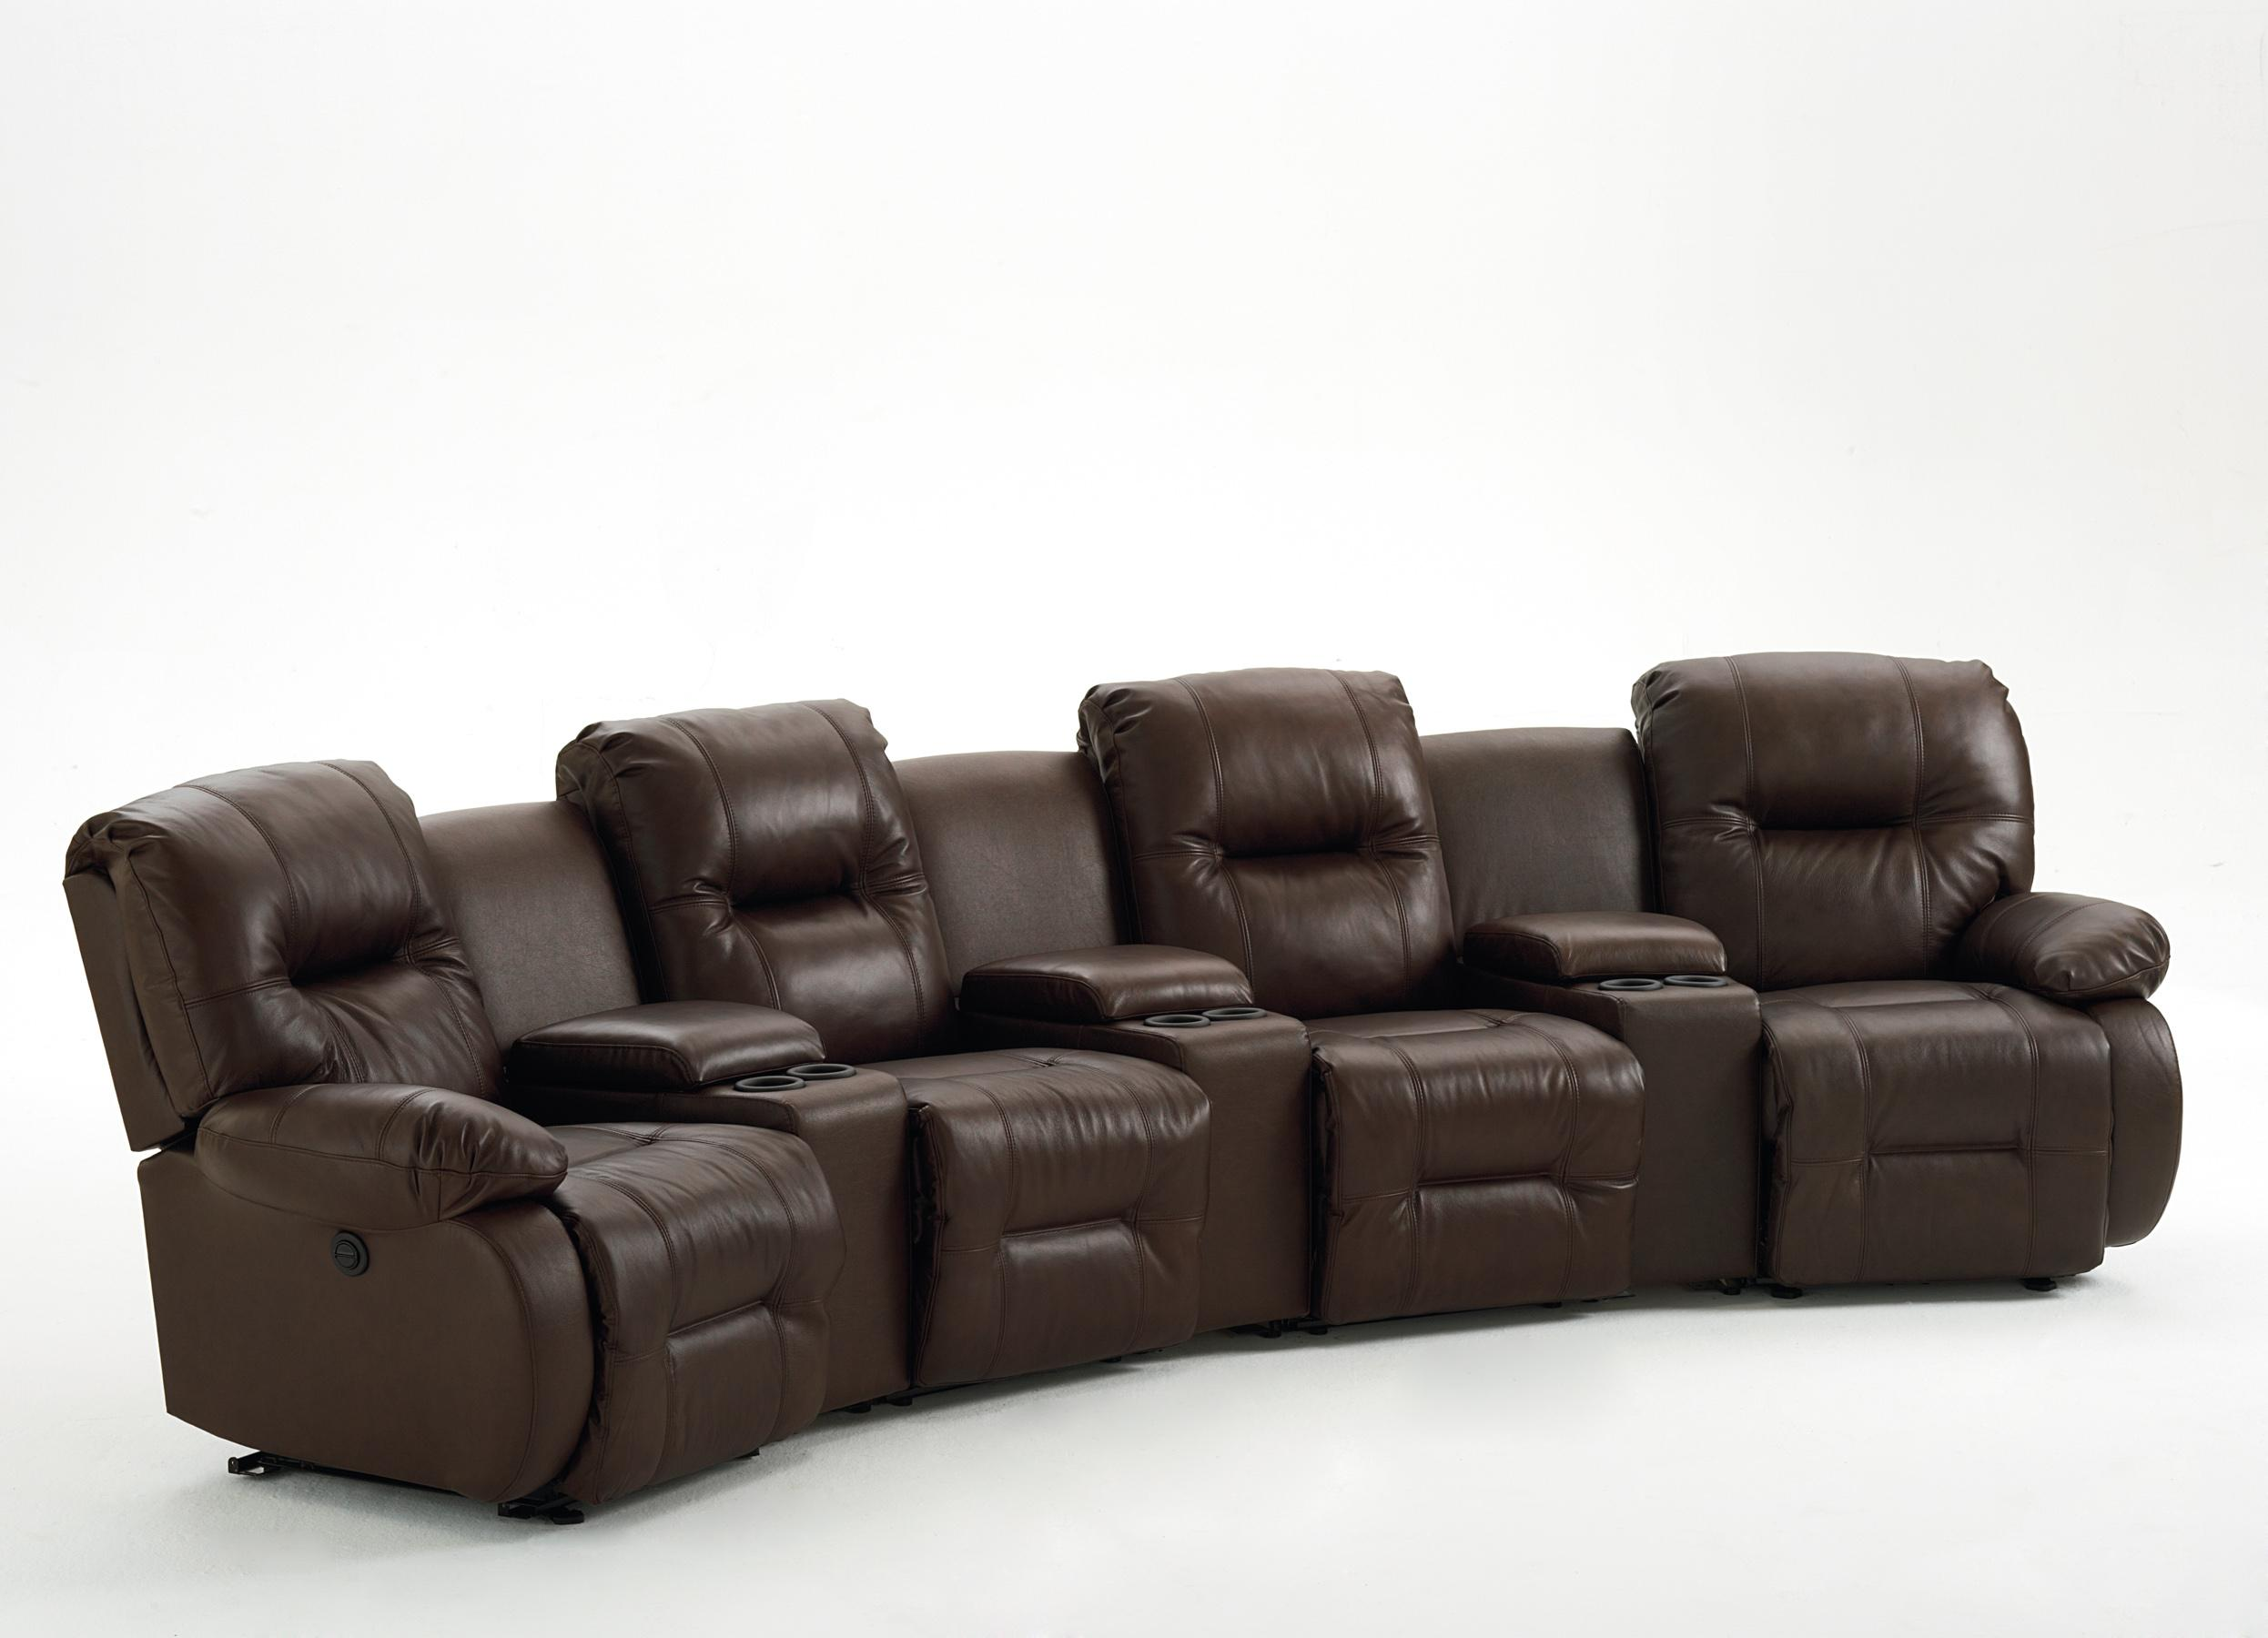 Seven Piece Power Reclining Home Theater Group with Three Drink Holder and Storage Consoles & Seven Piece Power Reclining Home Theater Group with Three Drink ... islam-shia.org